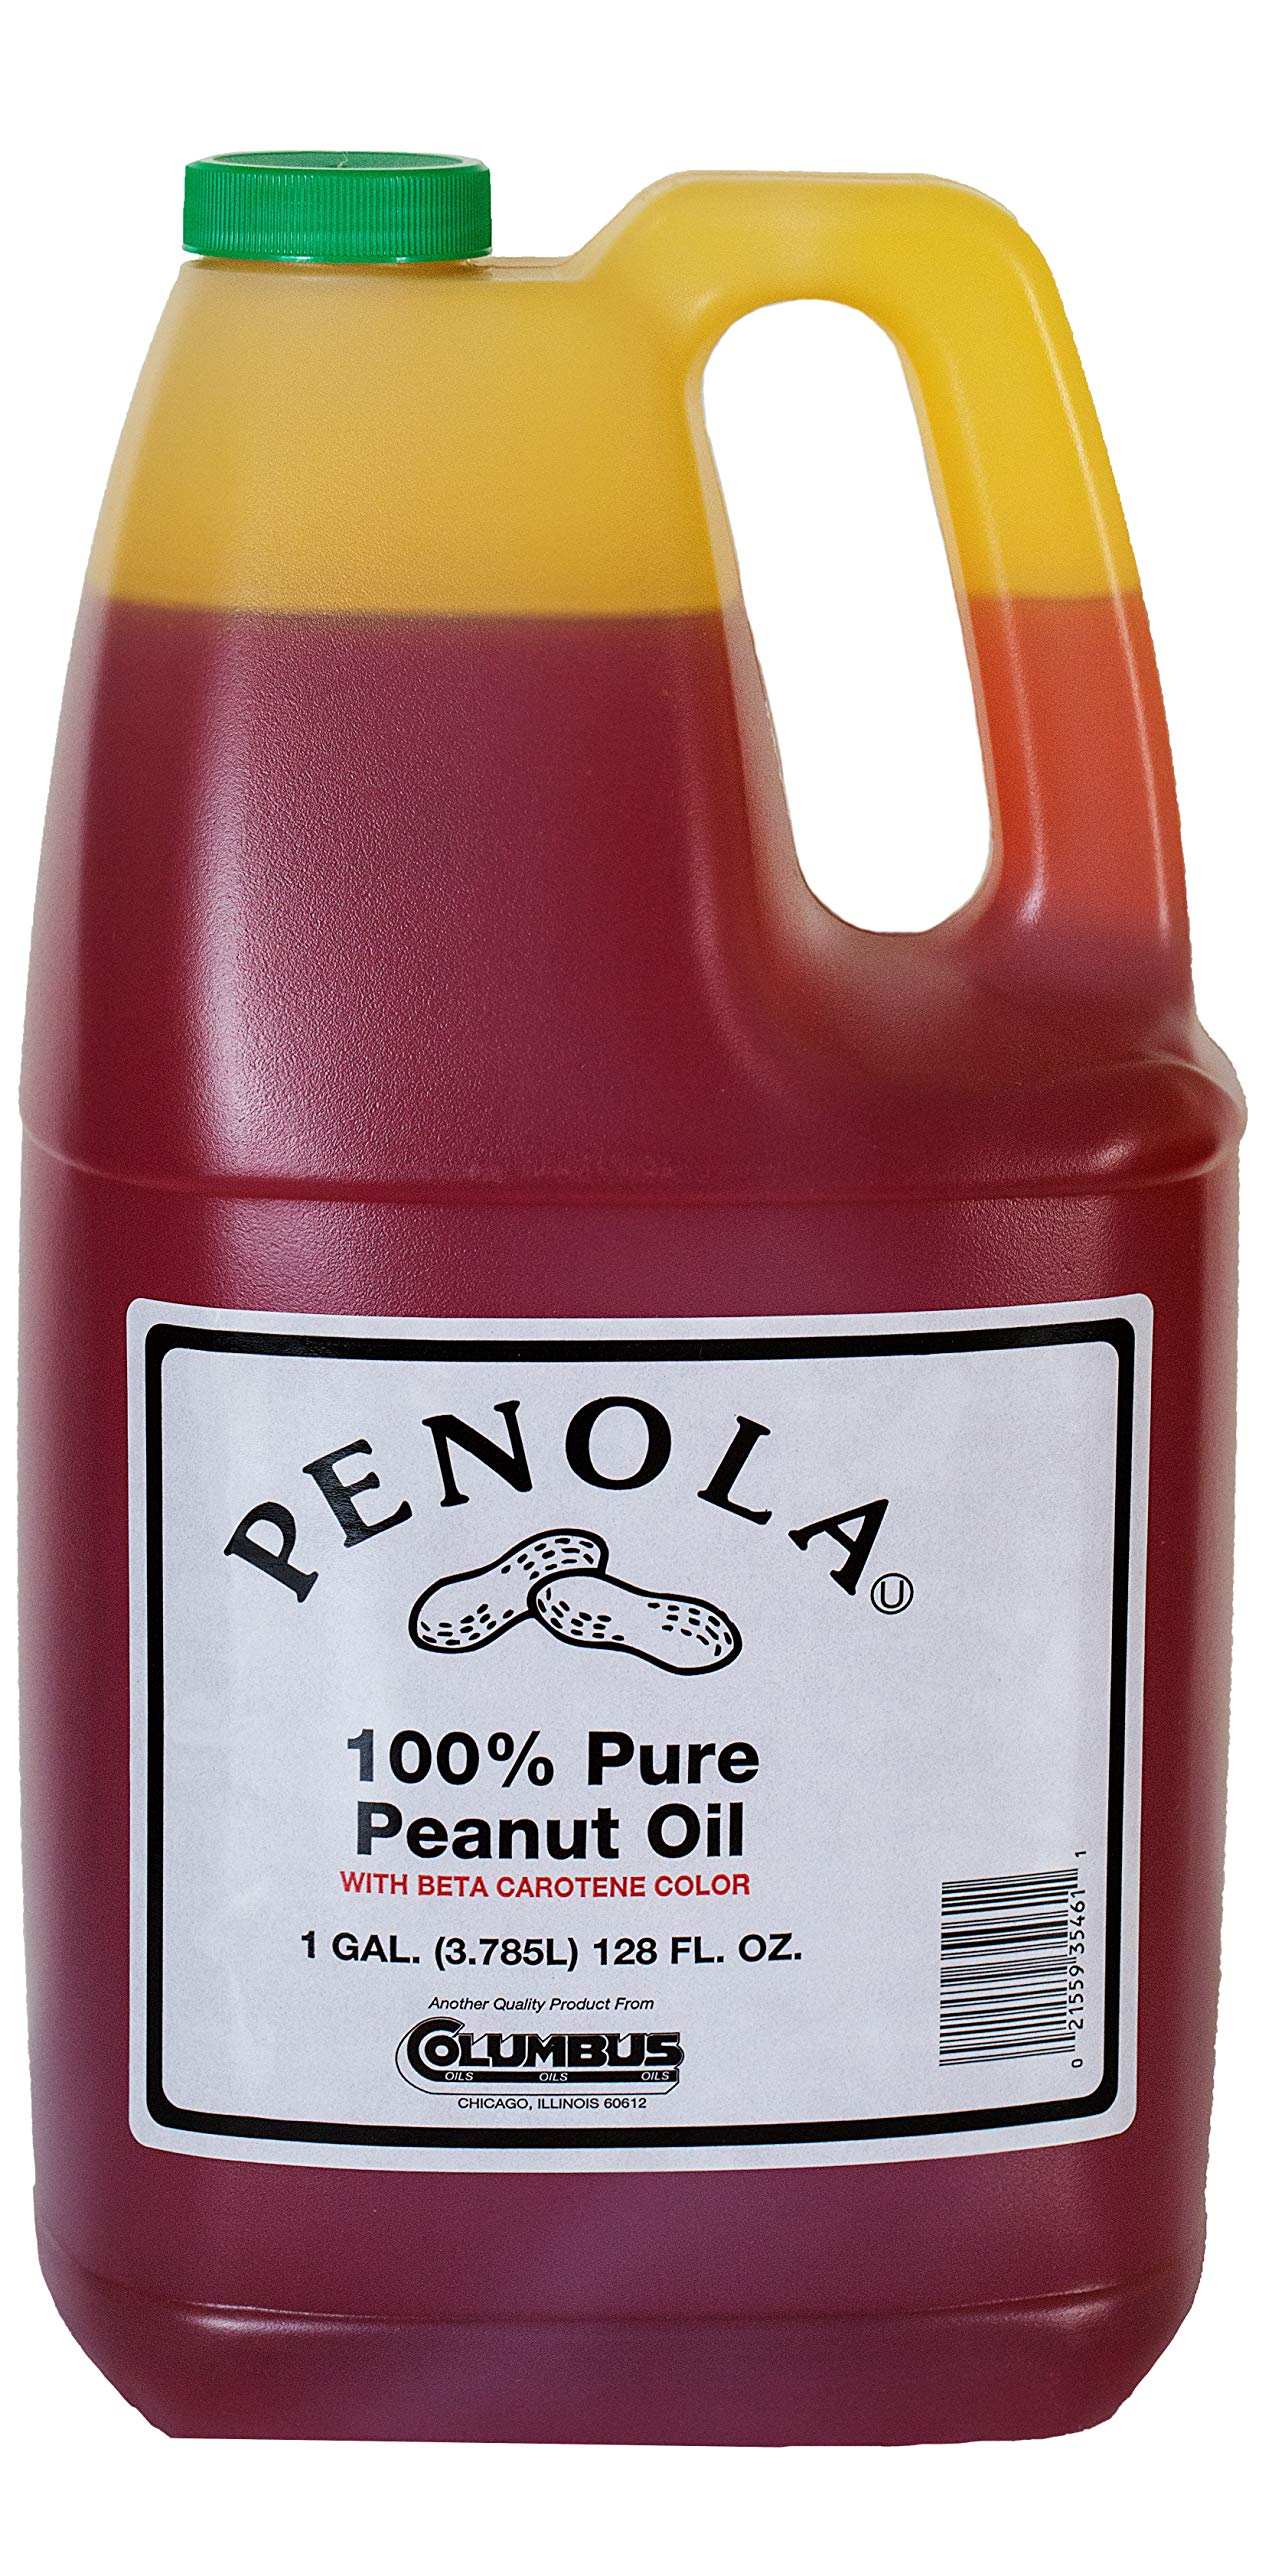 Amish Country Popcorn - Peanut Oil (1 Gallon) - Old Fashioned with Recipe Guide by Amish Country Popcorn